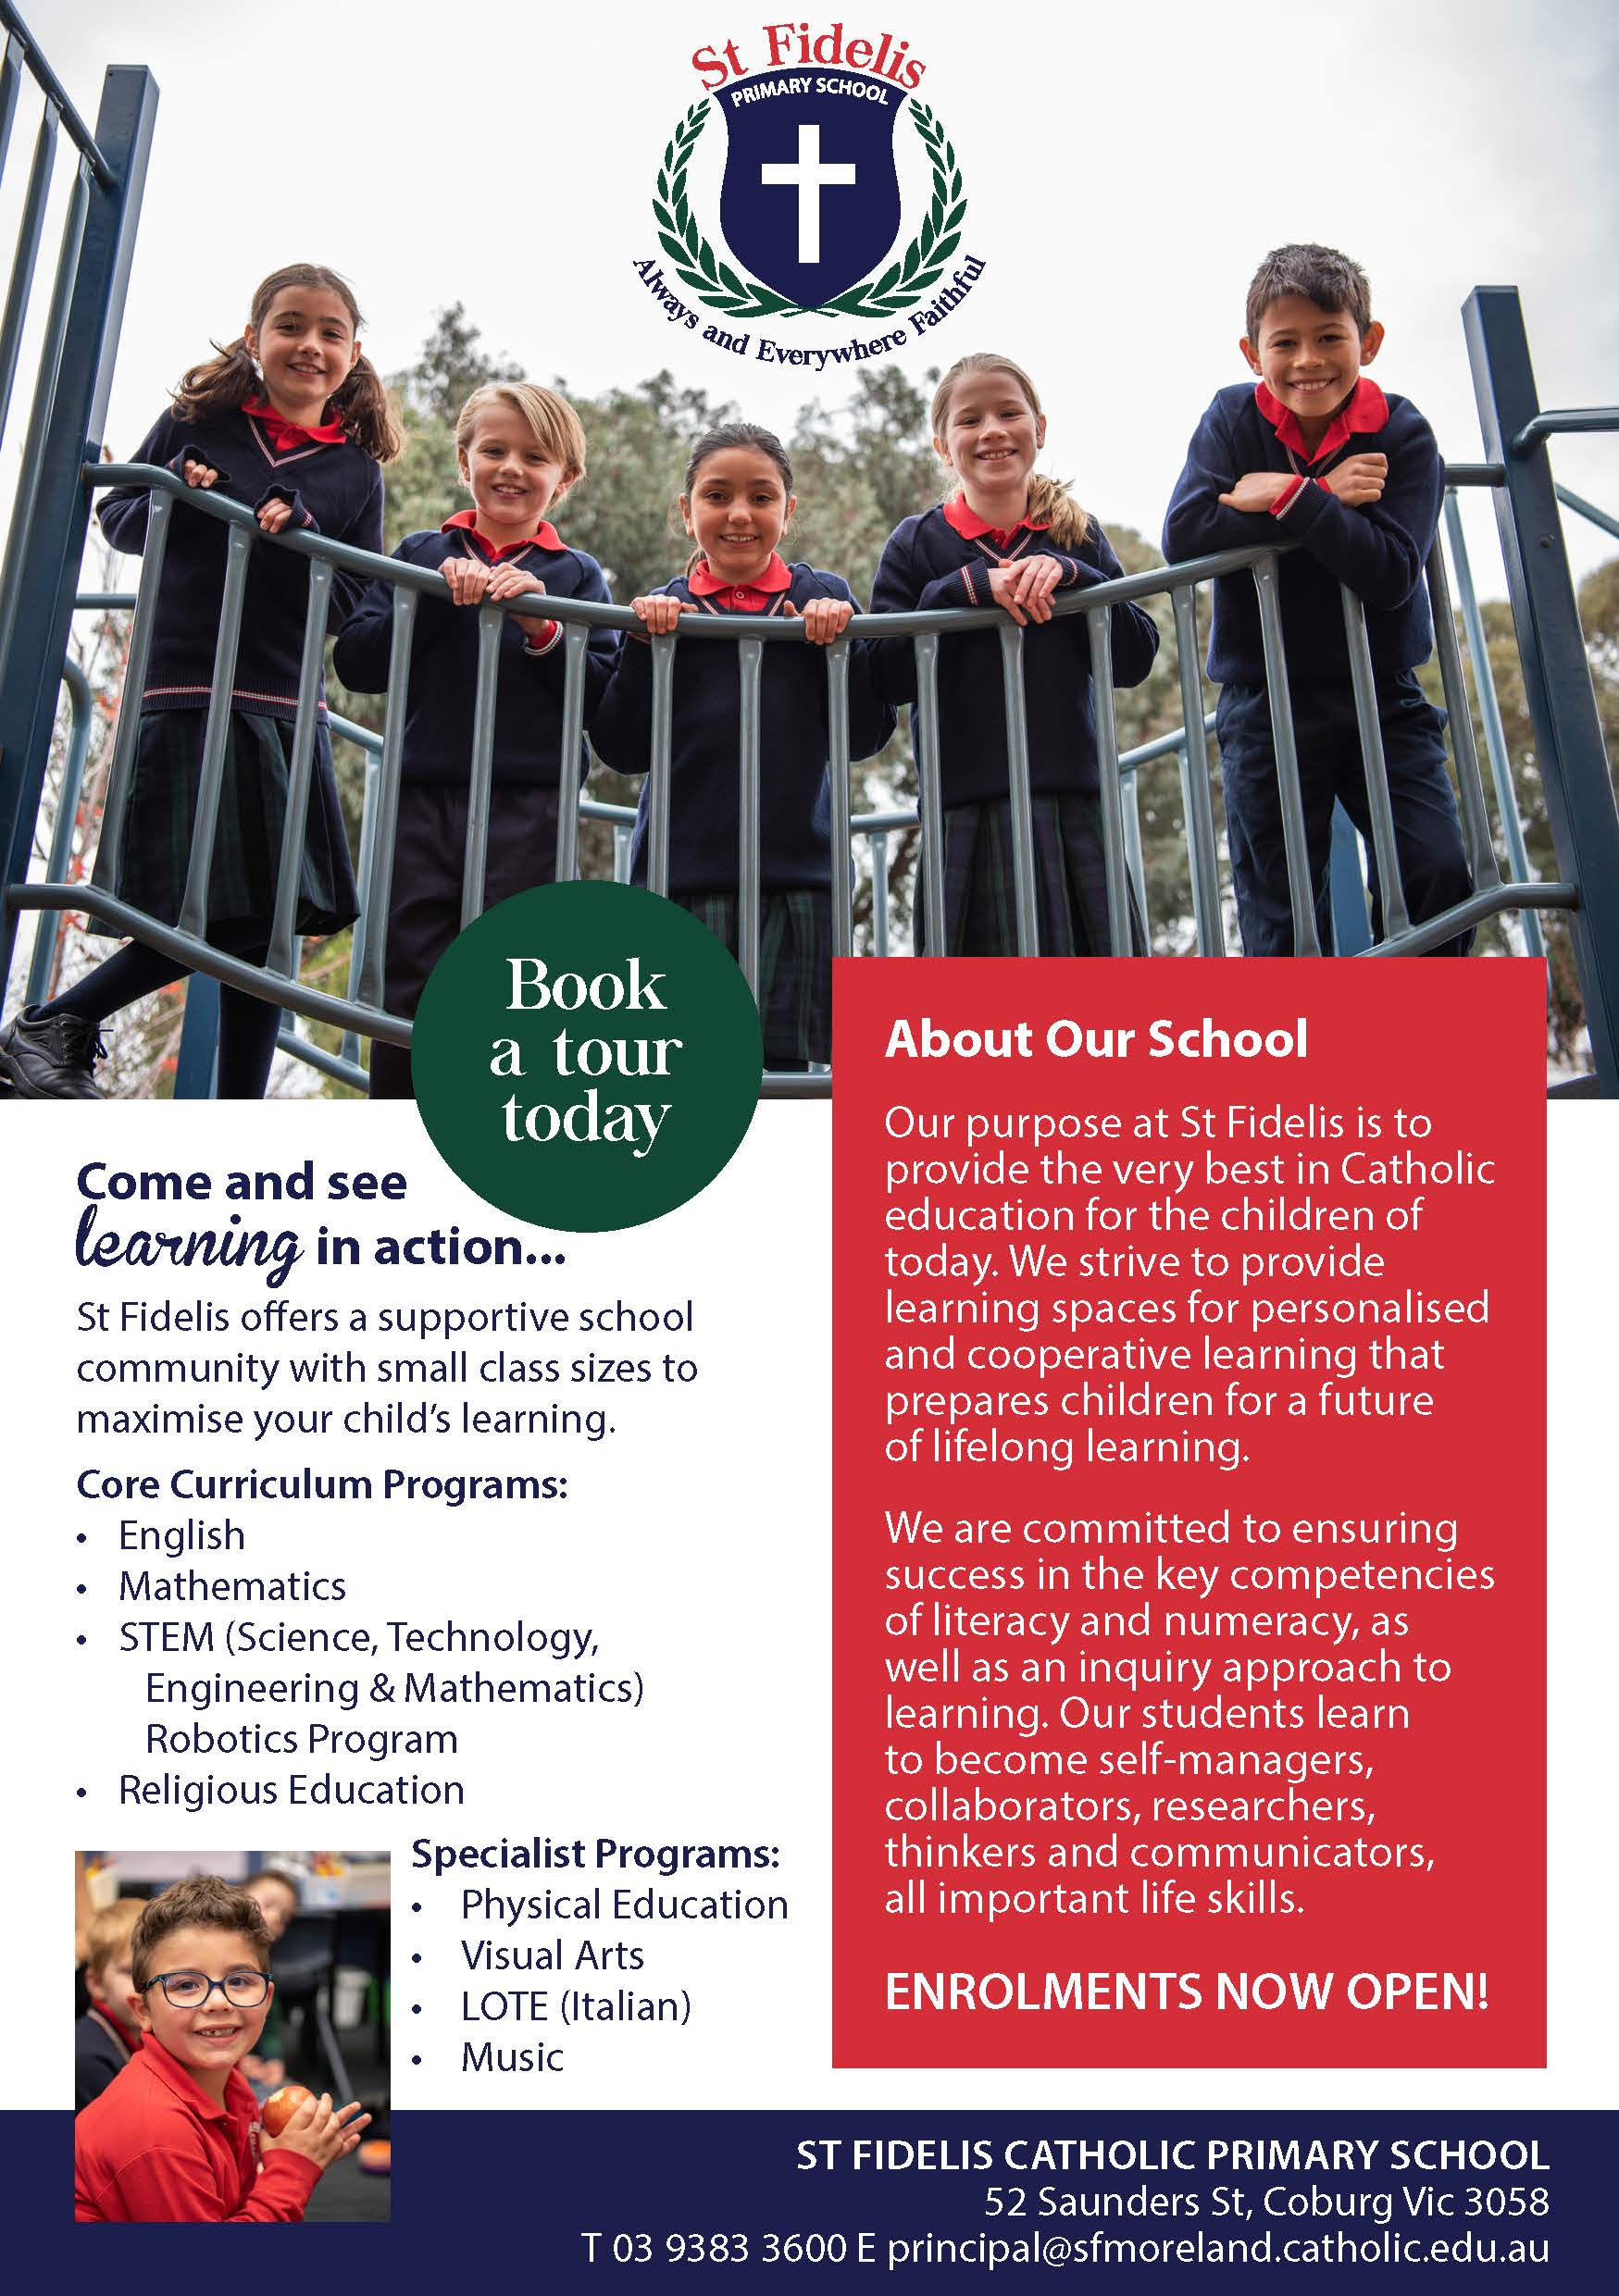 St Fidelis Catholic Primary School - A5 Flyer